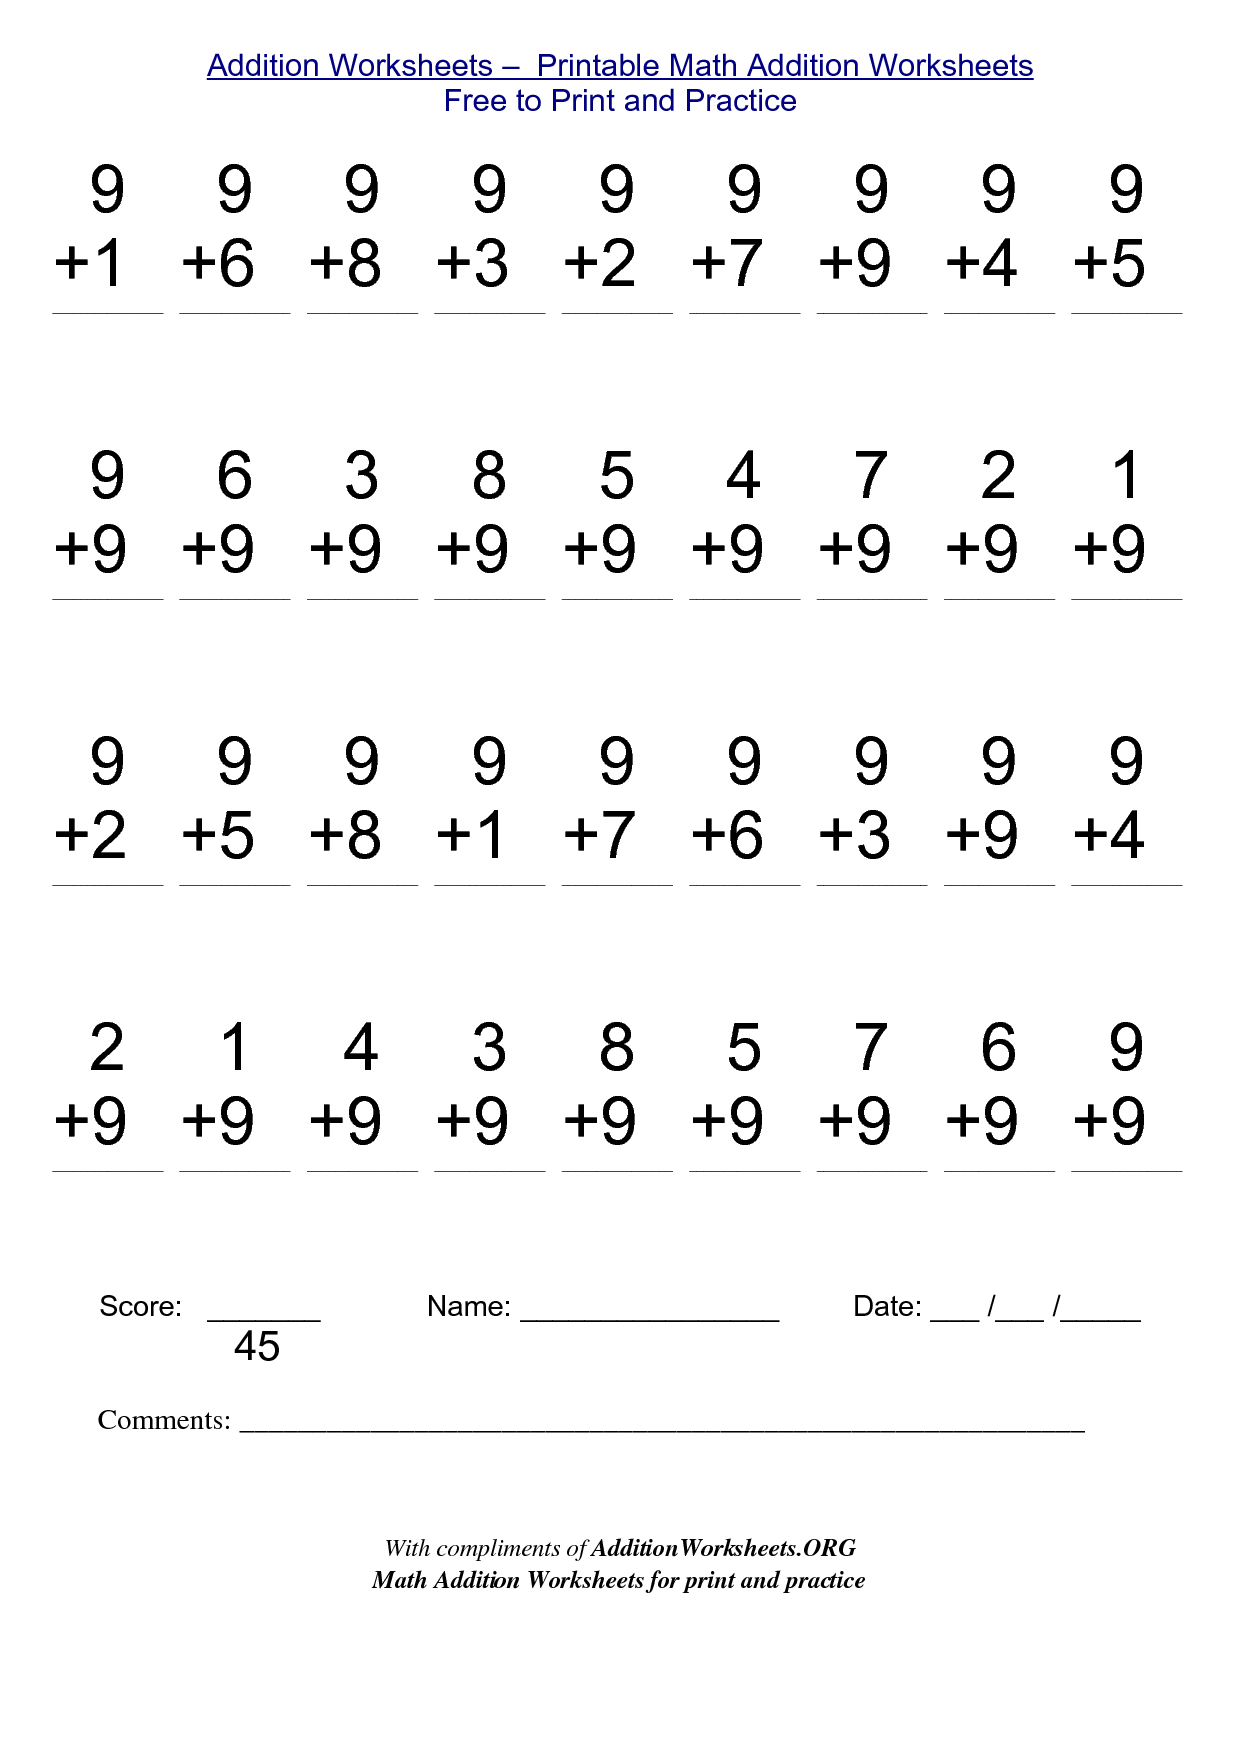 Free Printable Math Worksheets Algebra : Math worksheets for free to print alot me